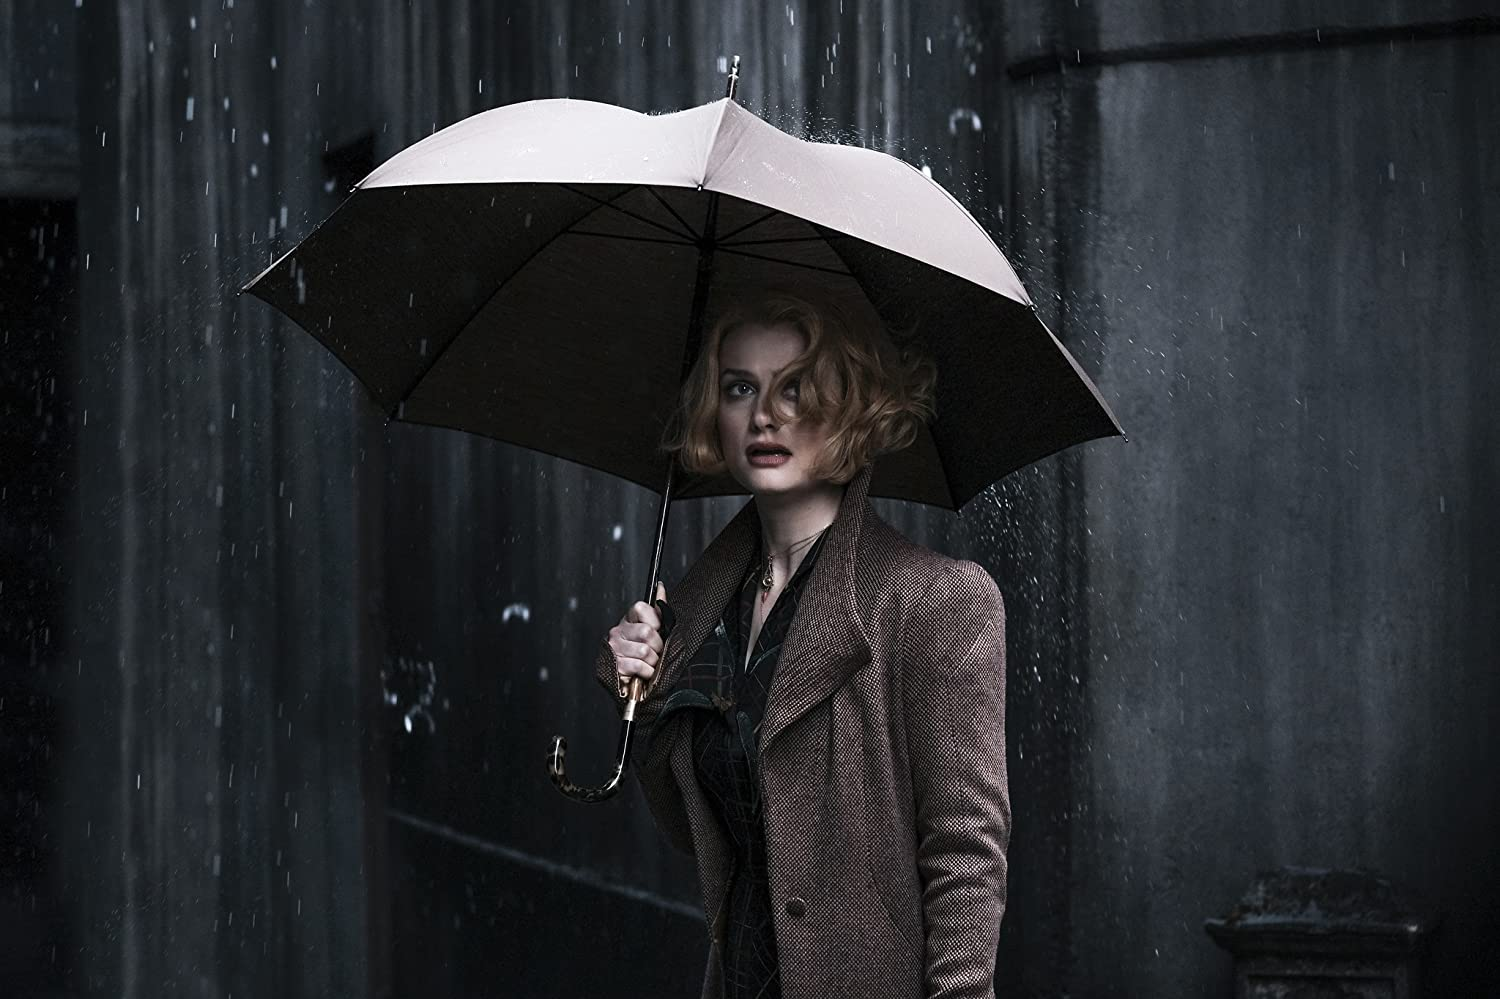 Alison Sudol in Fantastic Beasts: The Crimes of Grindelwald (2018)